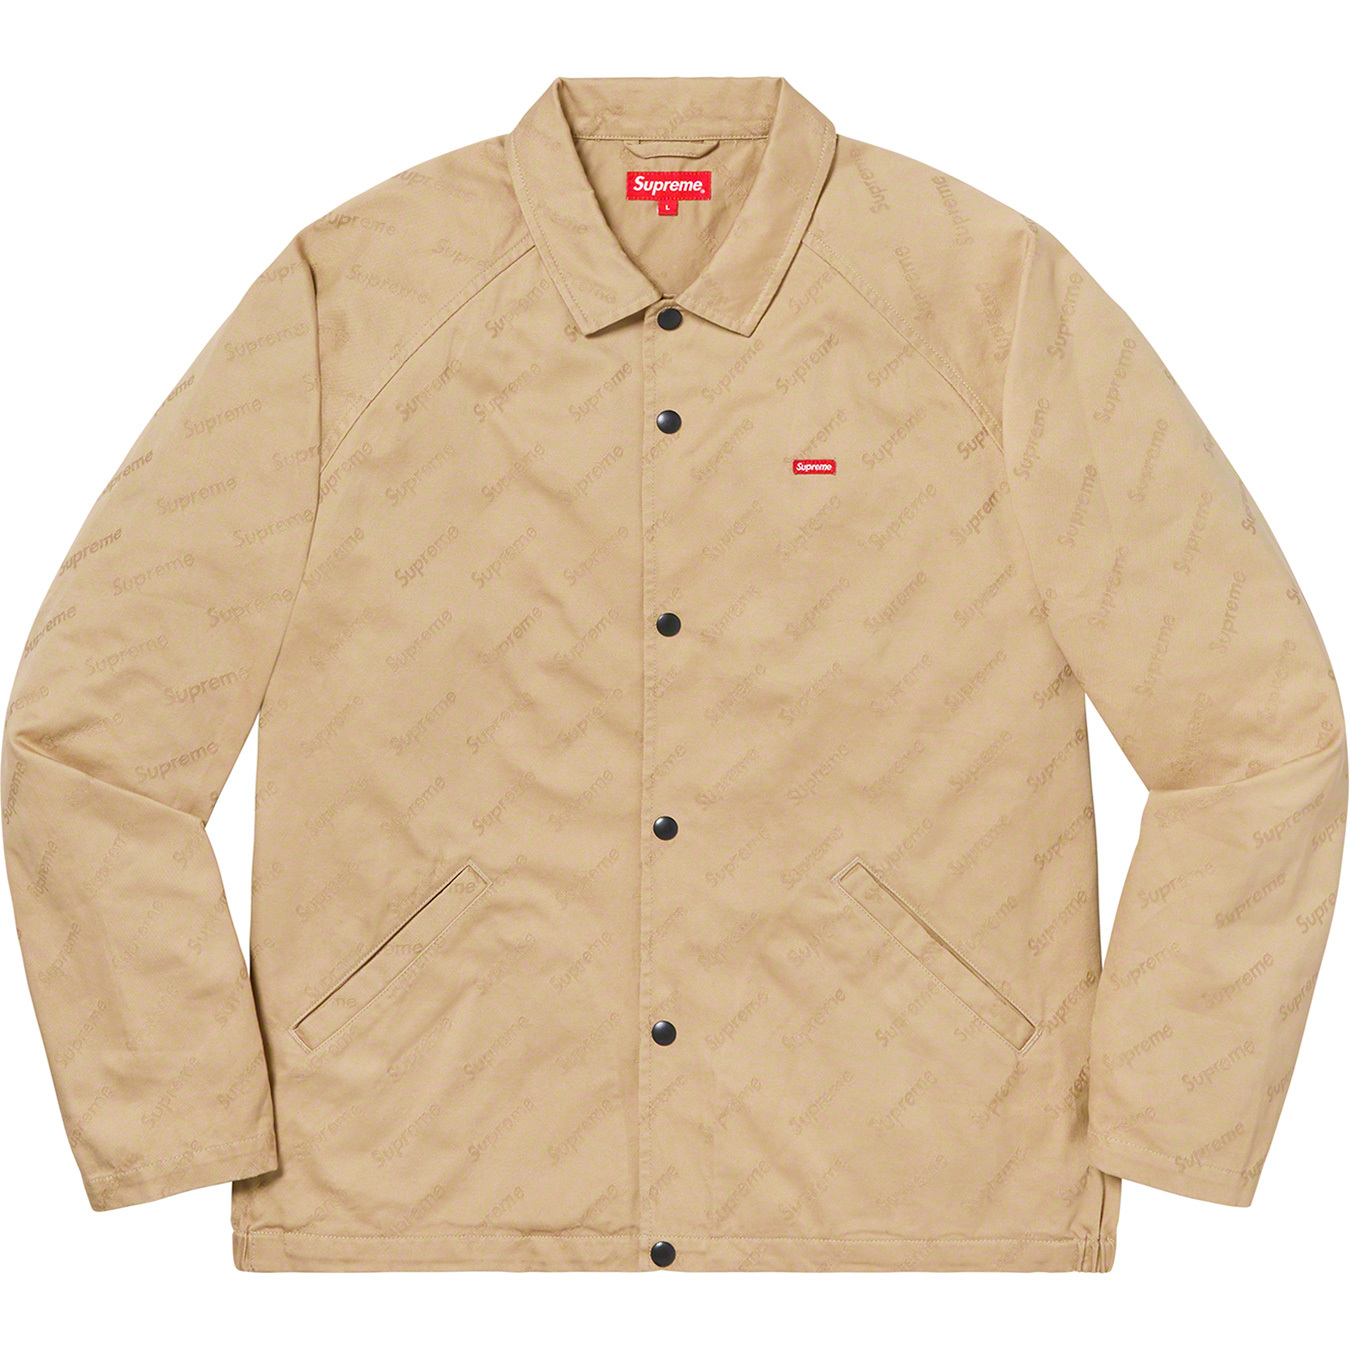 supreme-19aw-19fw-fall-winter-snap-front-jacquard-logos-twill-jacket